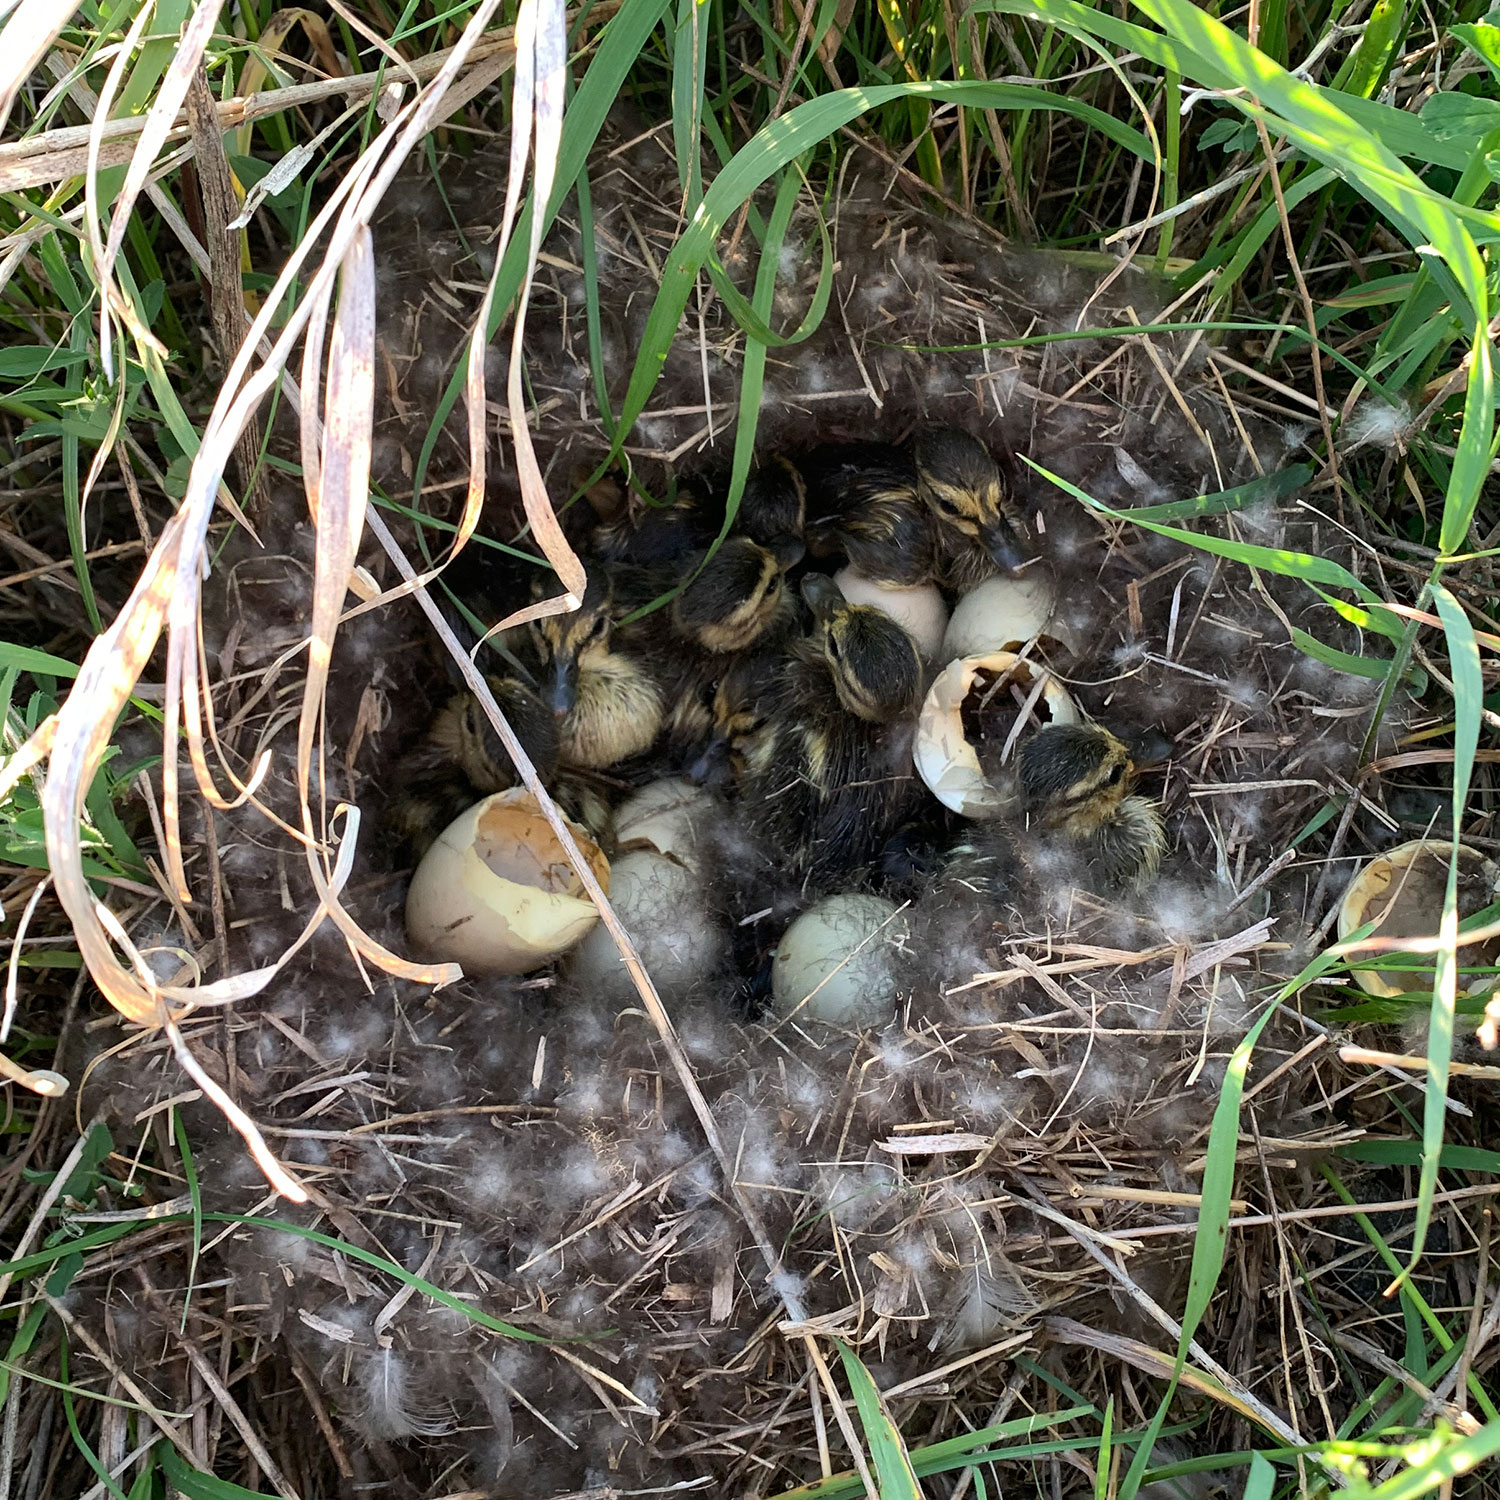 Newly hatched ducklings in nest